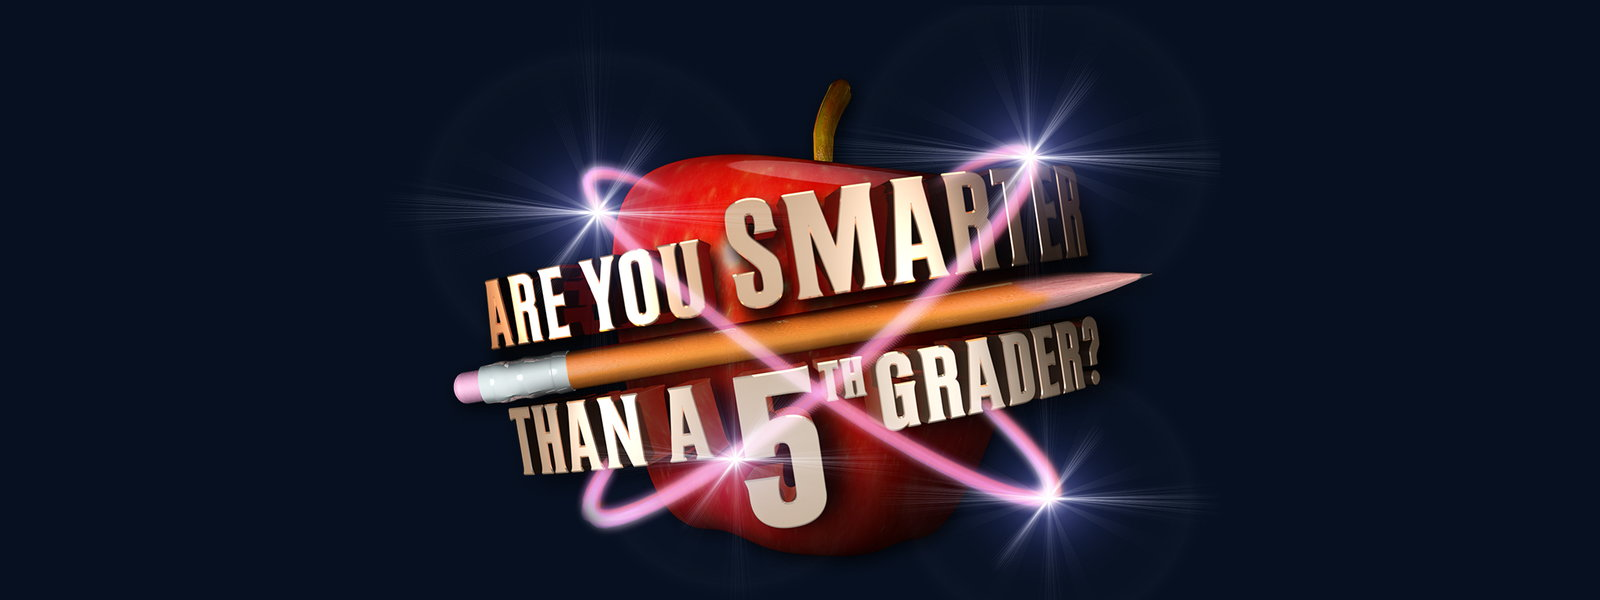 are you smarter than a 5th grader application